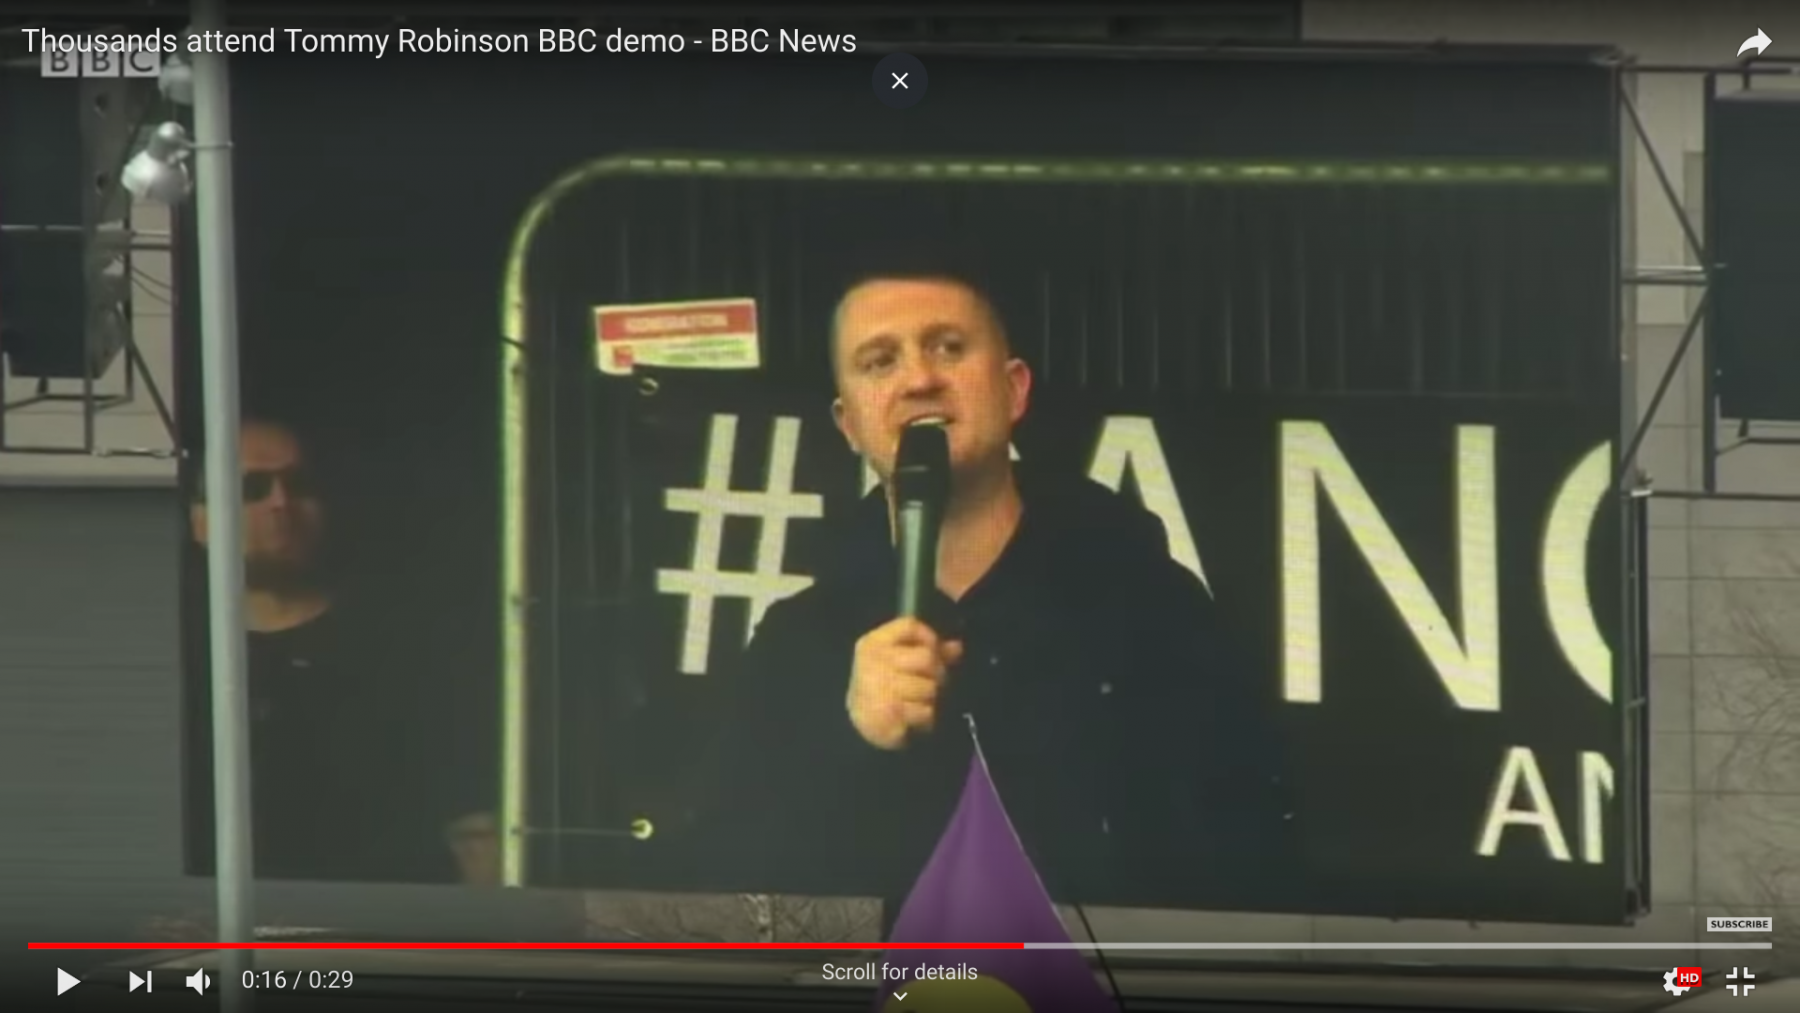 Facebook erases far-right activist Tommy Robinson's page over 'hate speech'